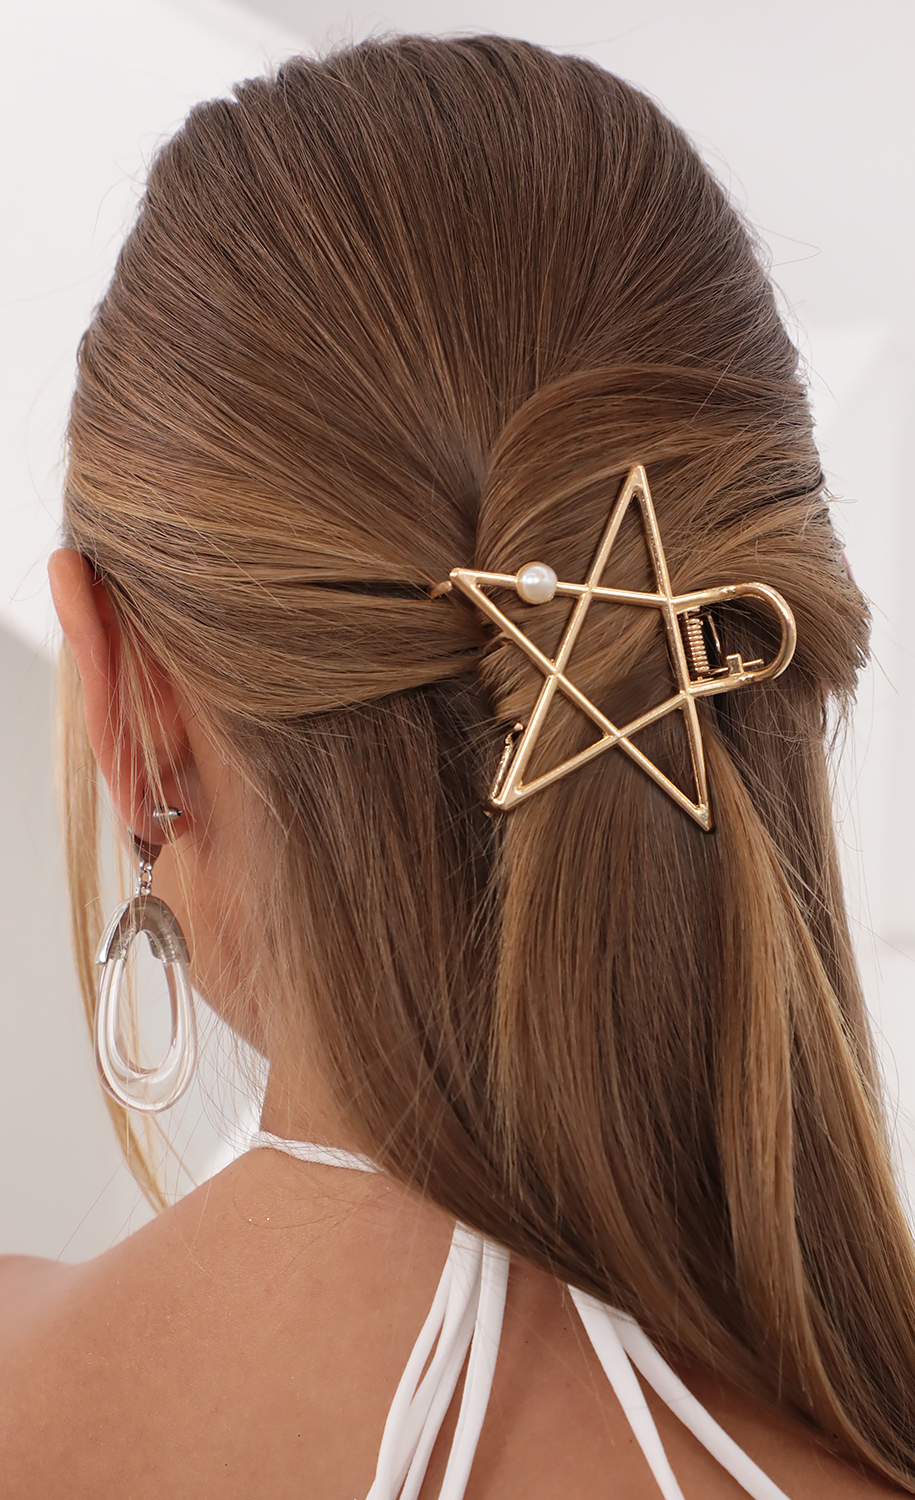 You's A Star Hair Clip in Gold